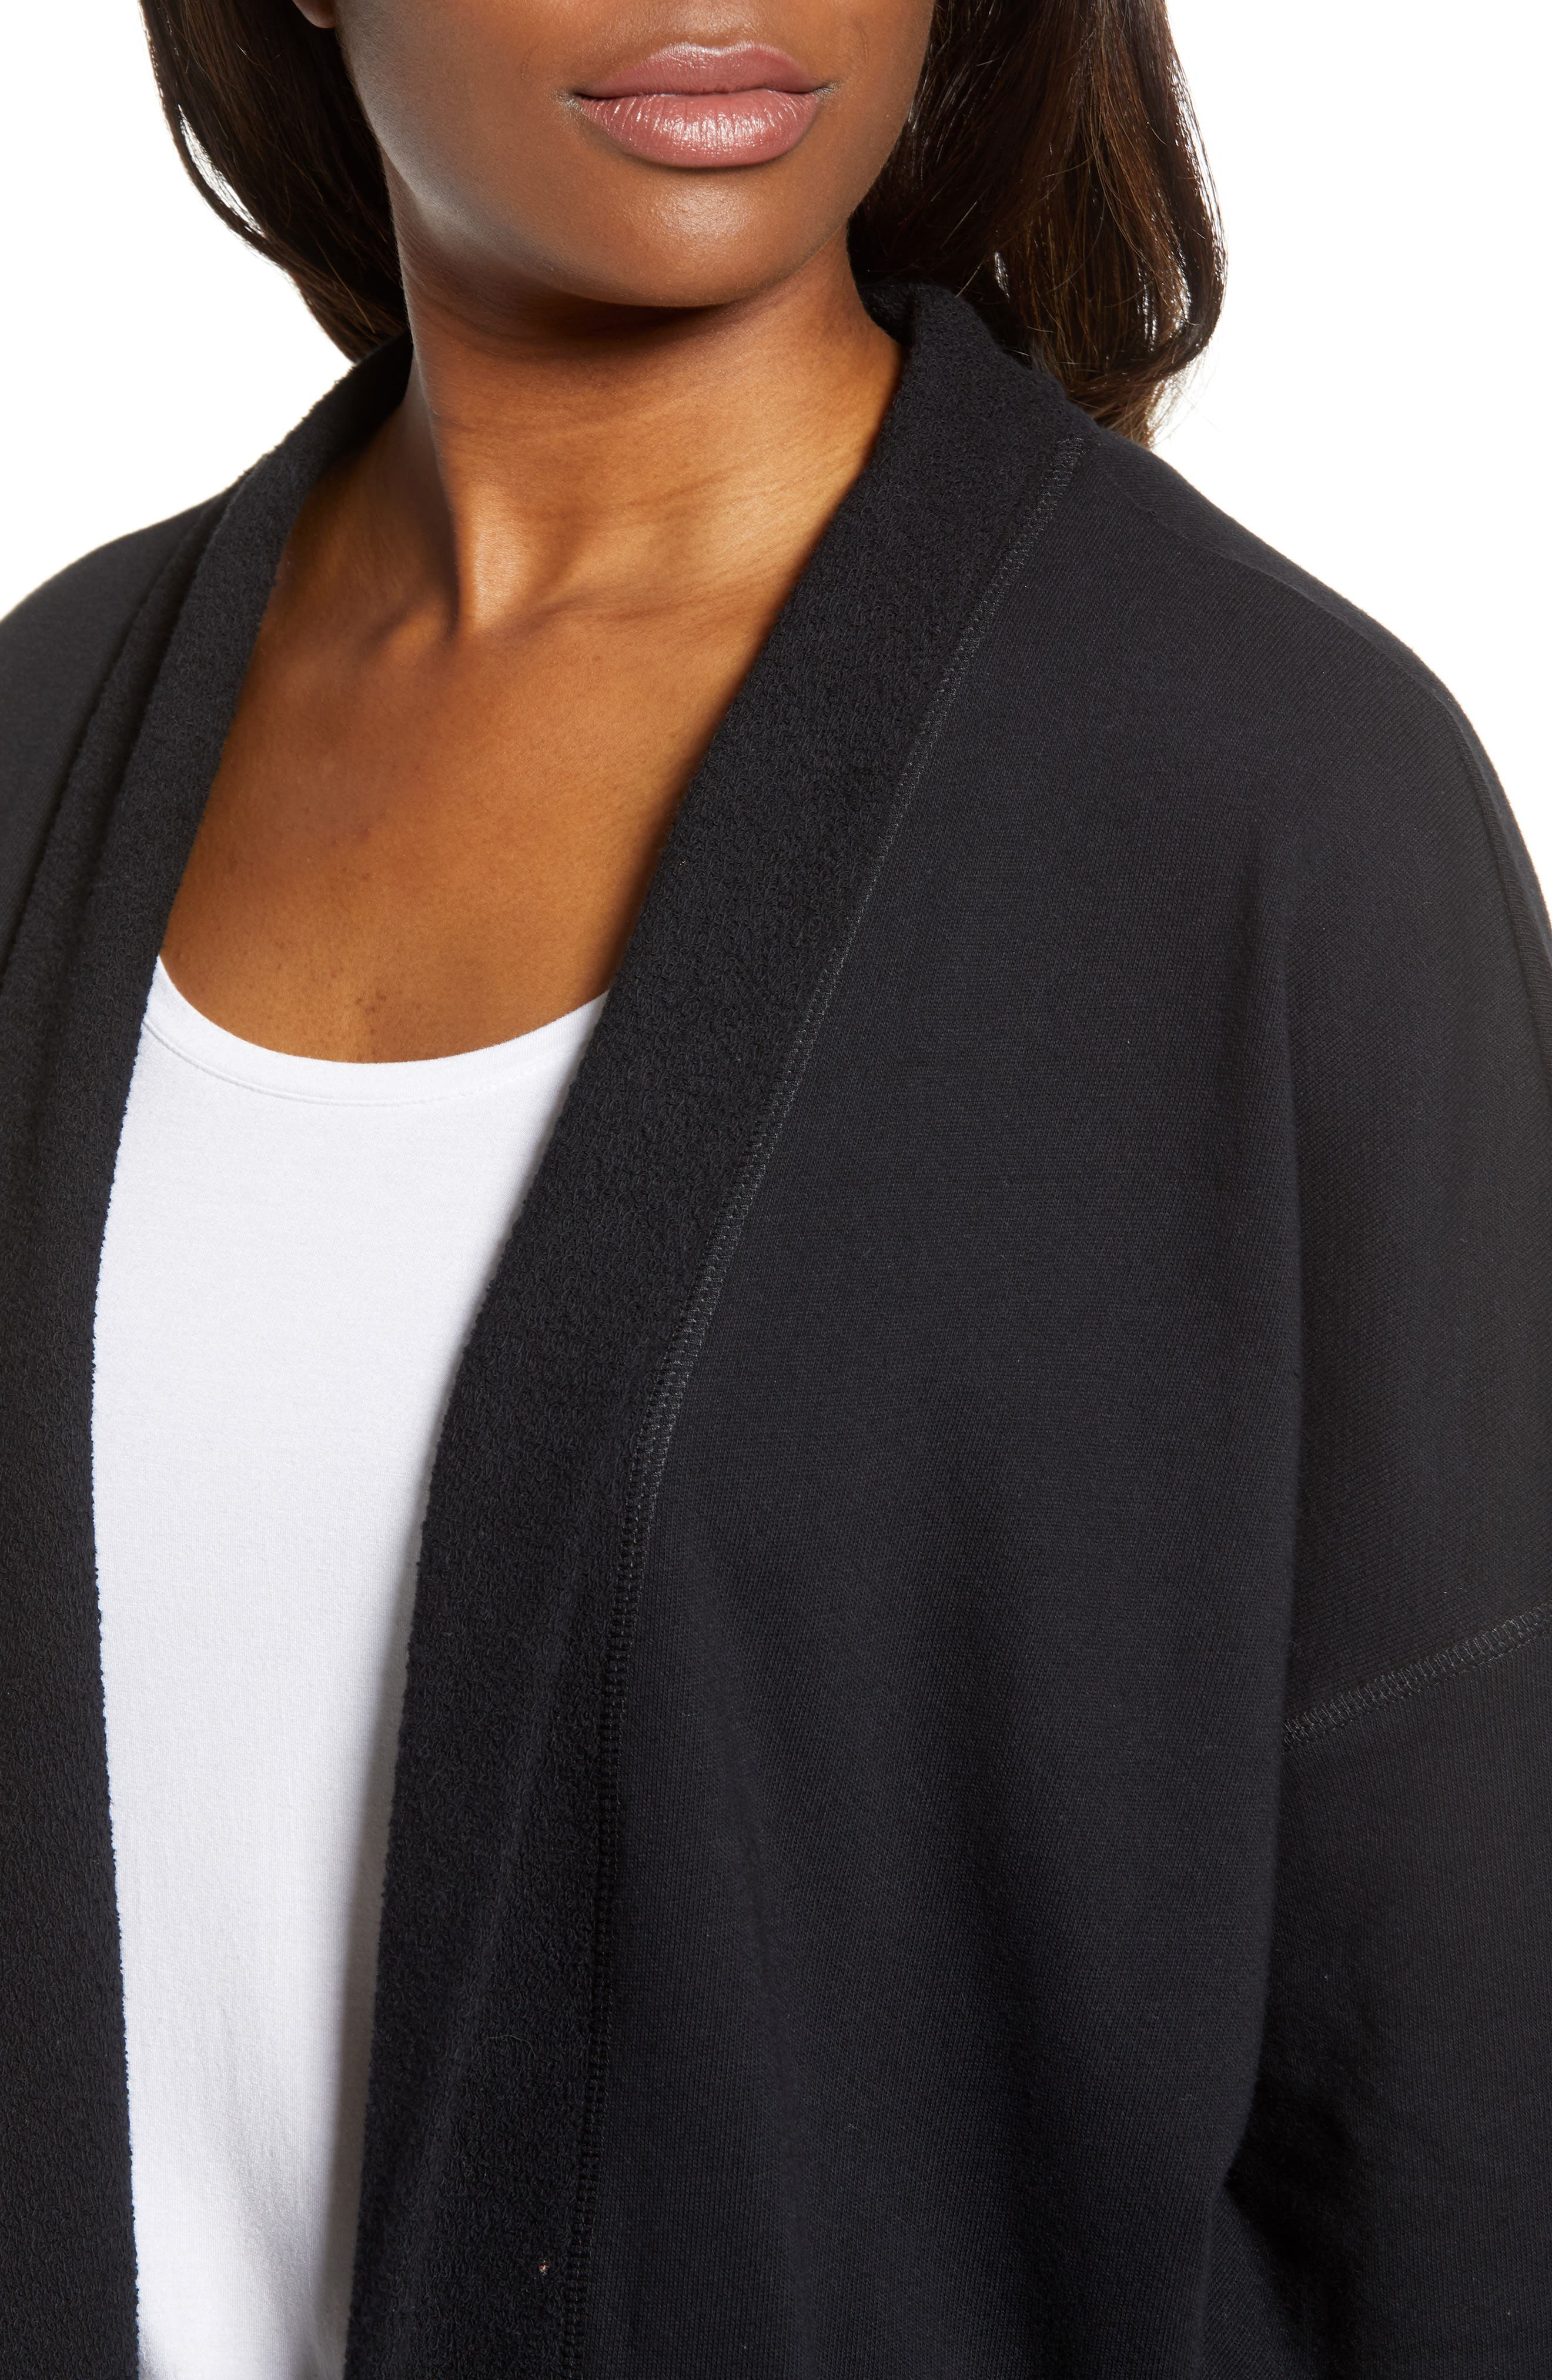 Off-Duty Roll Sleeve Cotton Blend Jacket,                             Alternate thumbnail 4, color,                             001